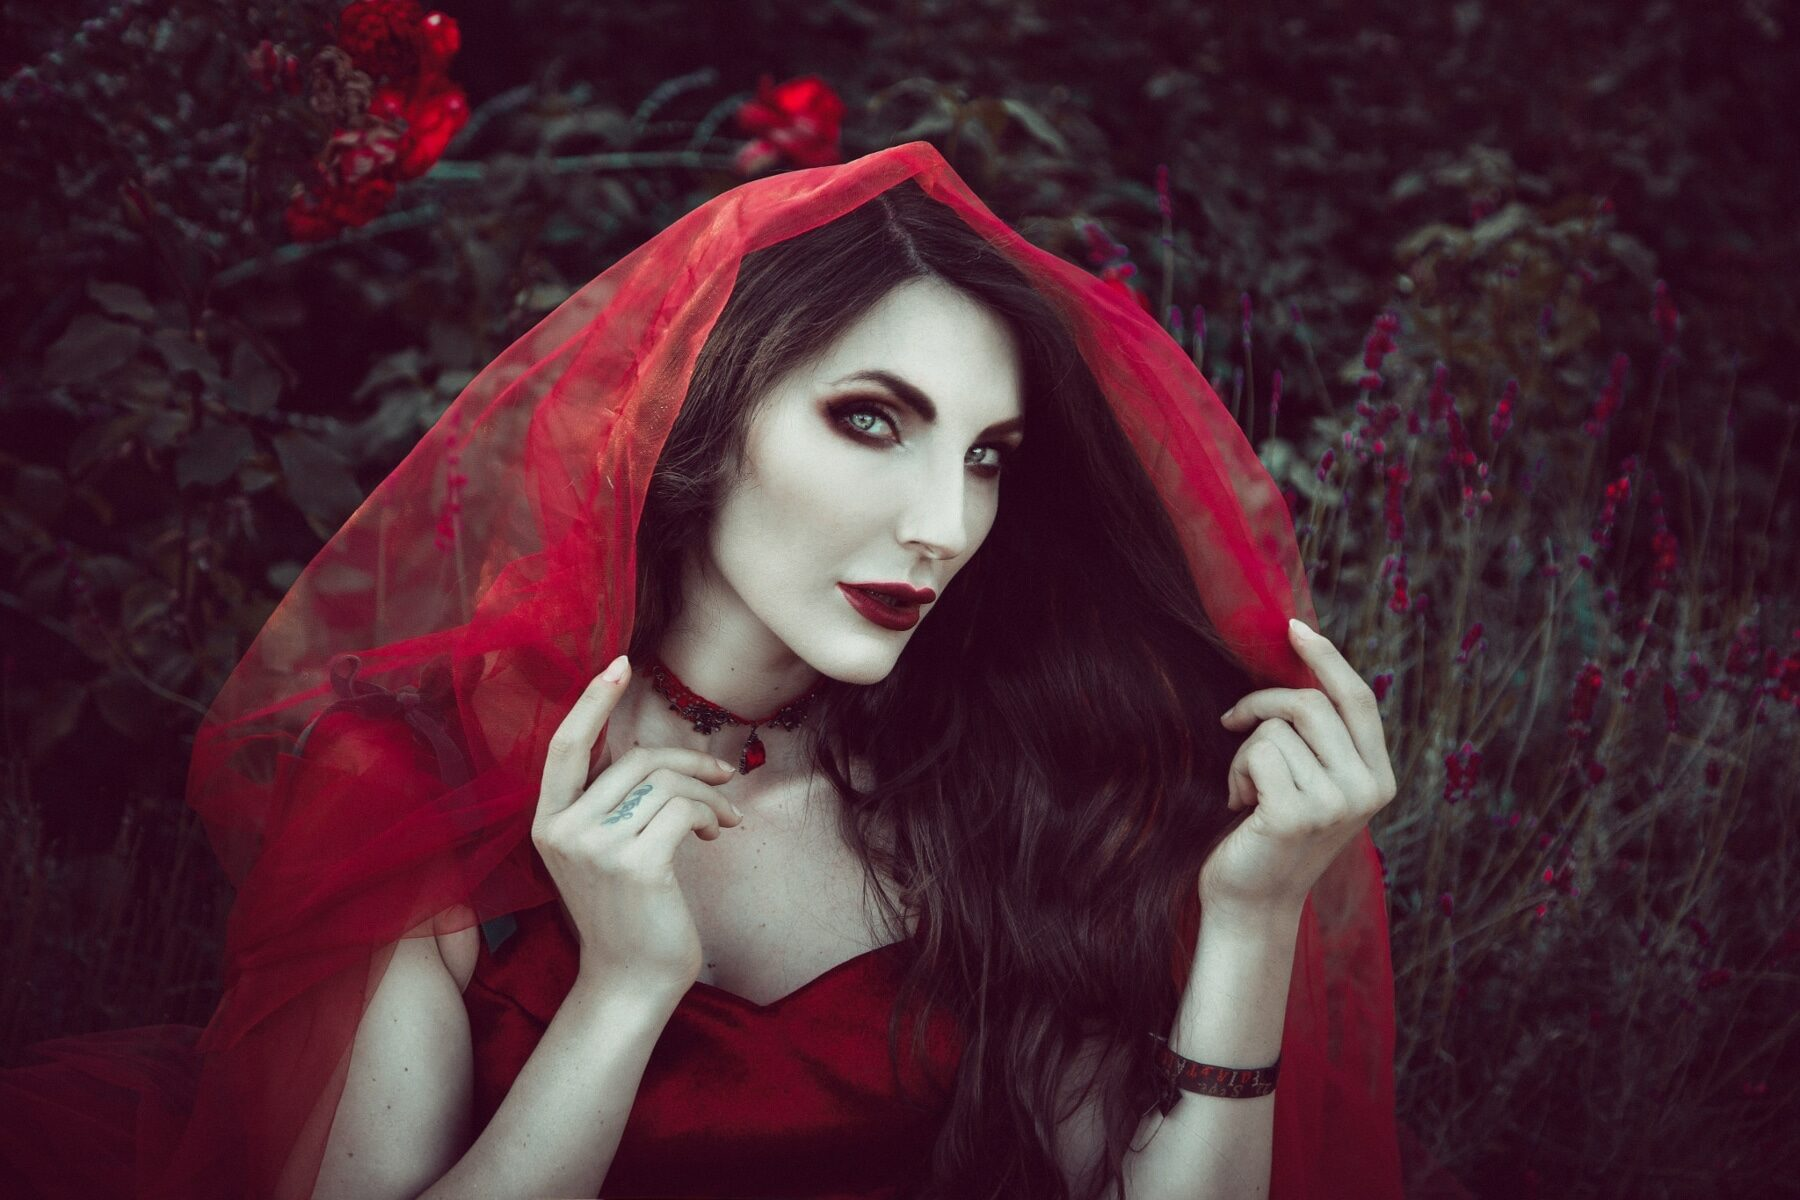 The Enduring Sexual Appeal of Vampires